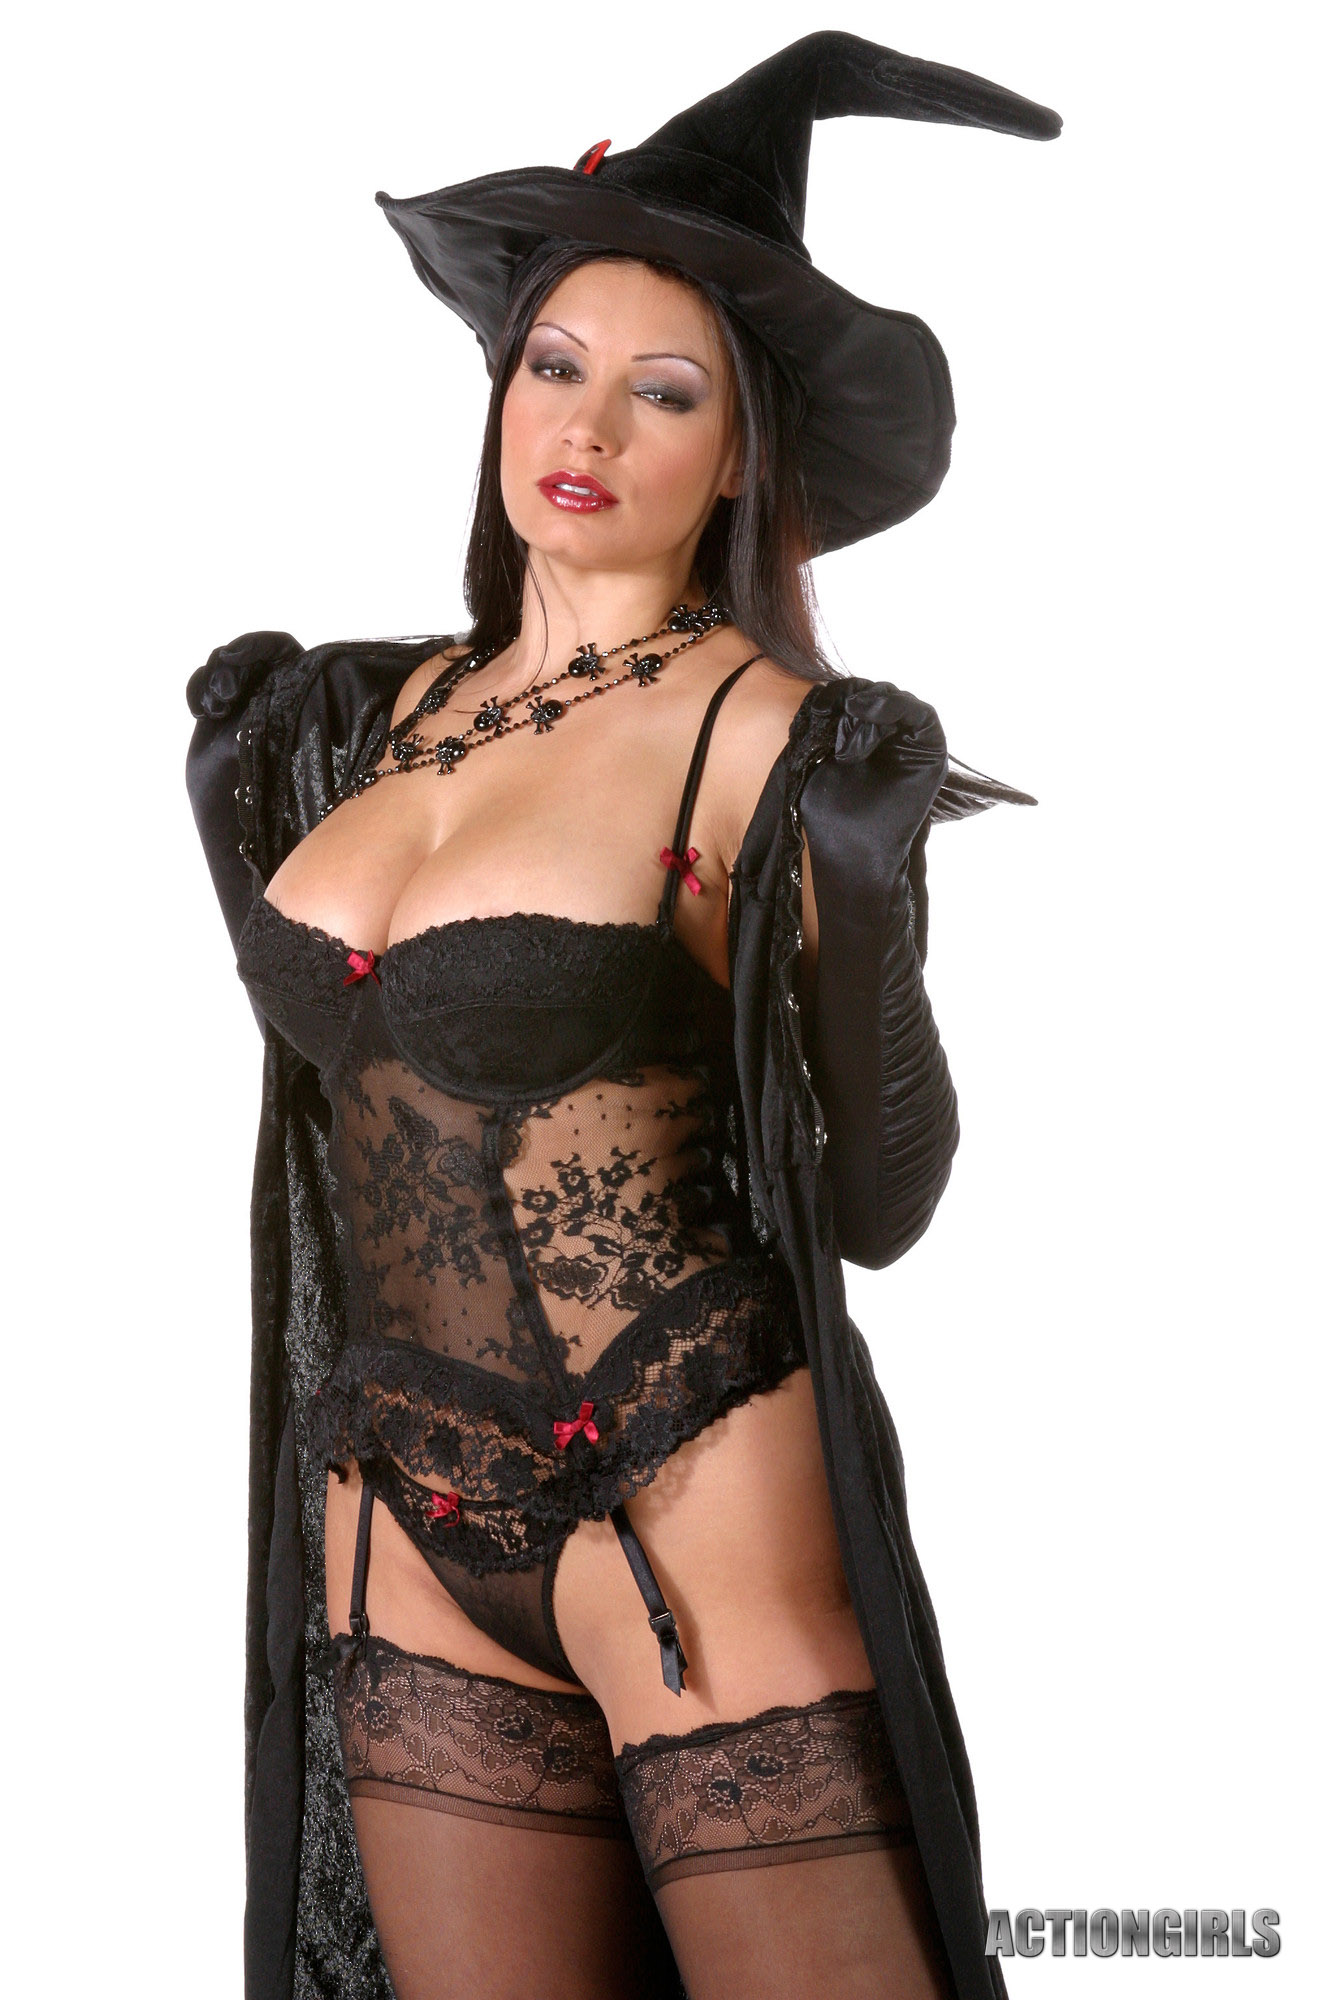 Aria Giovanni Big Tit Witch in Stockings for Actiongirls